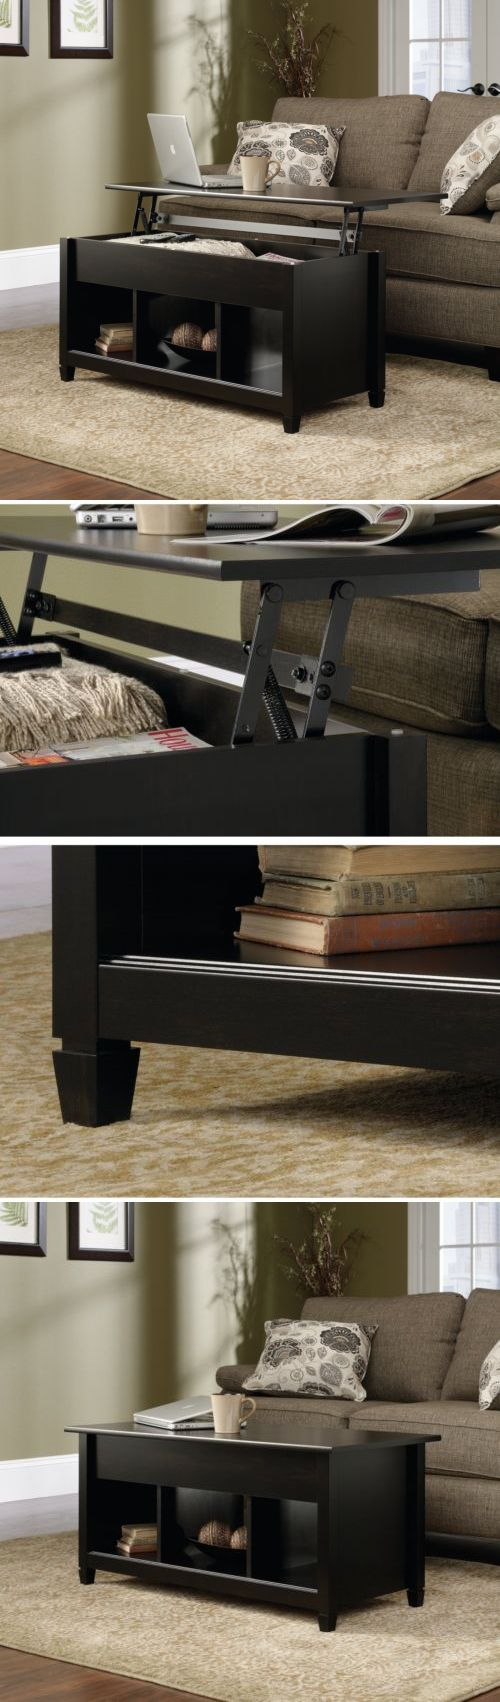 Dual Lift Top Coffee Table 17 Best Ideas About Lift Top Coffee Table On Pinterest Build A